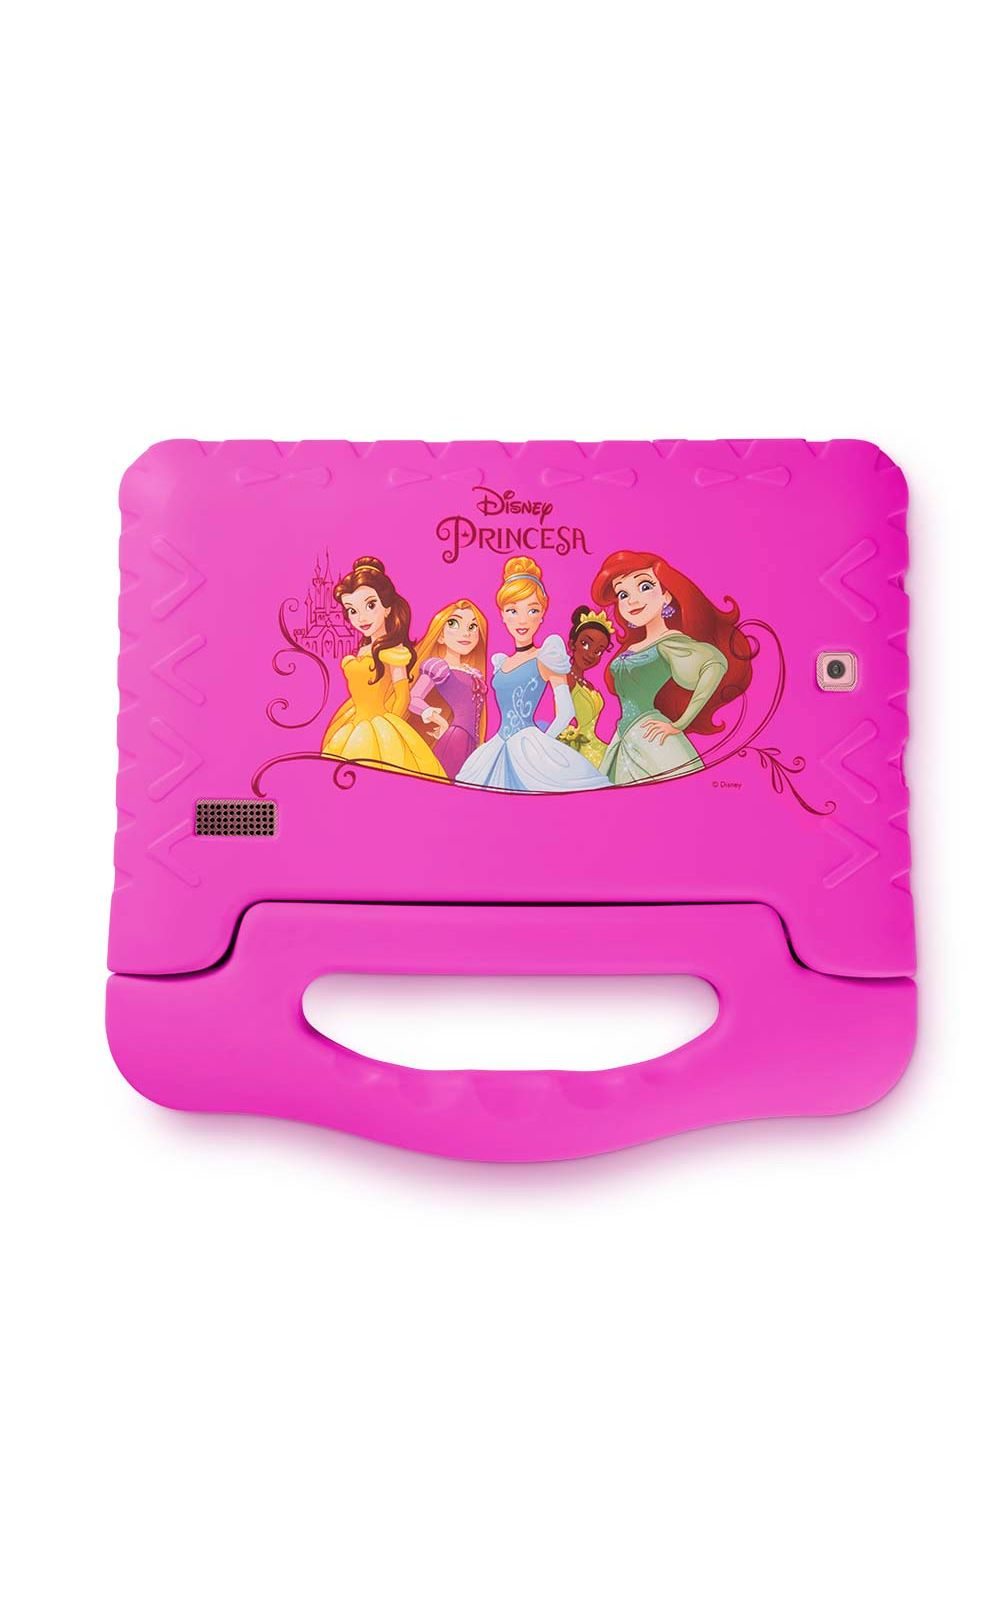 Foto 2 - Tablet Disney Princesas Plus Wifi 8Gb Dual Câmera Android 7 Rosa Multilaser - NB281